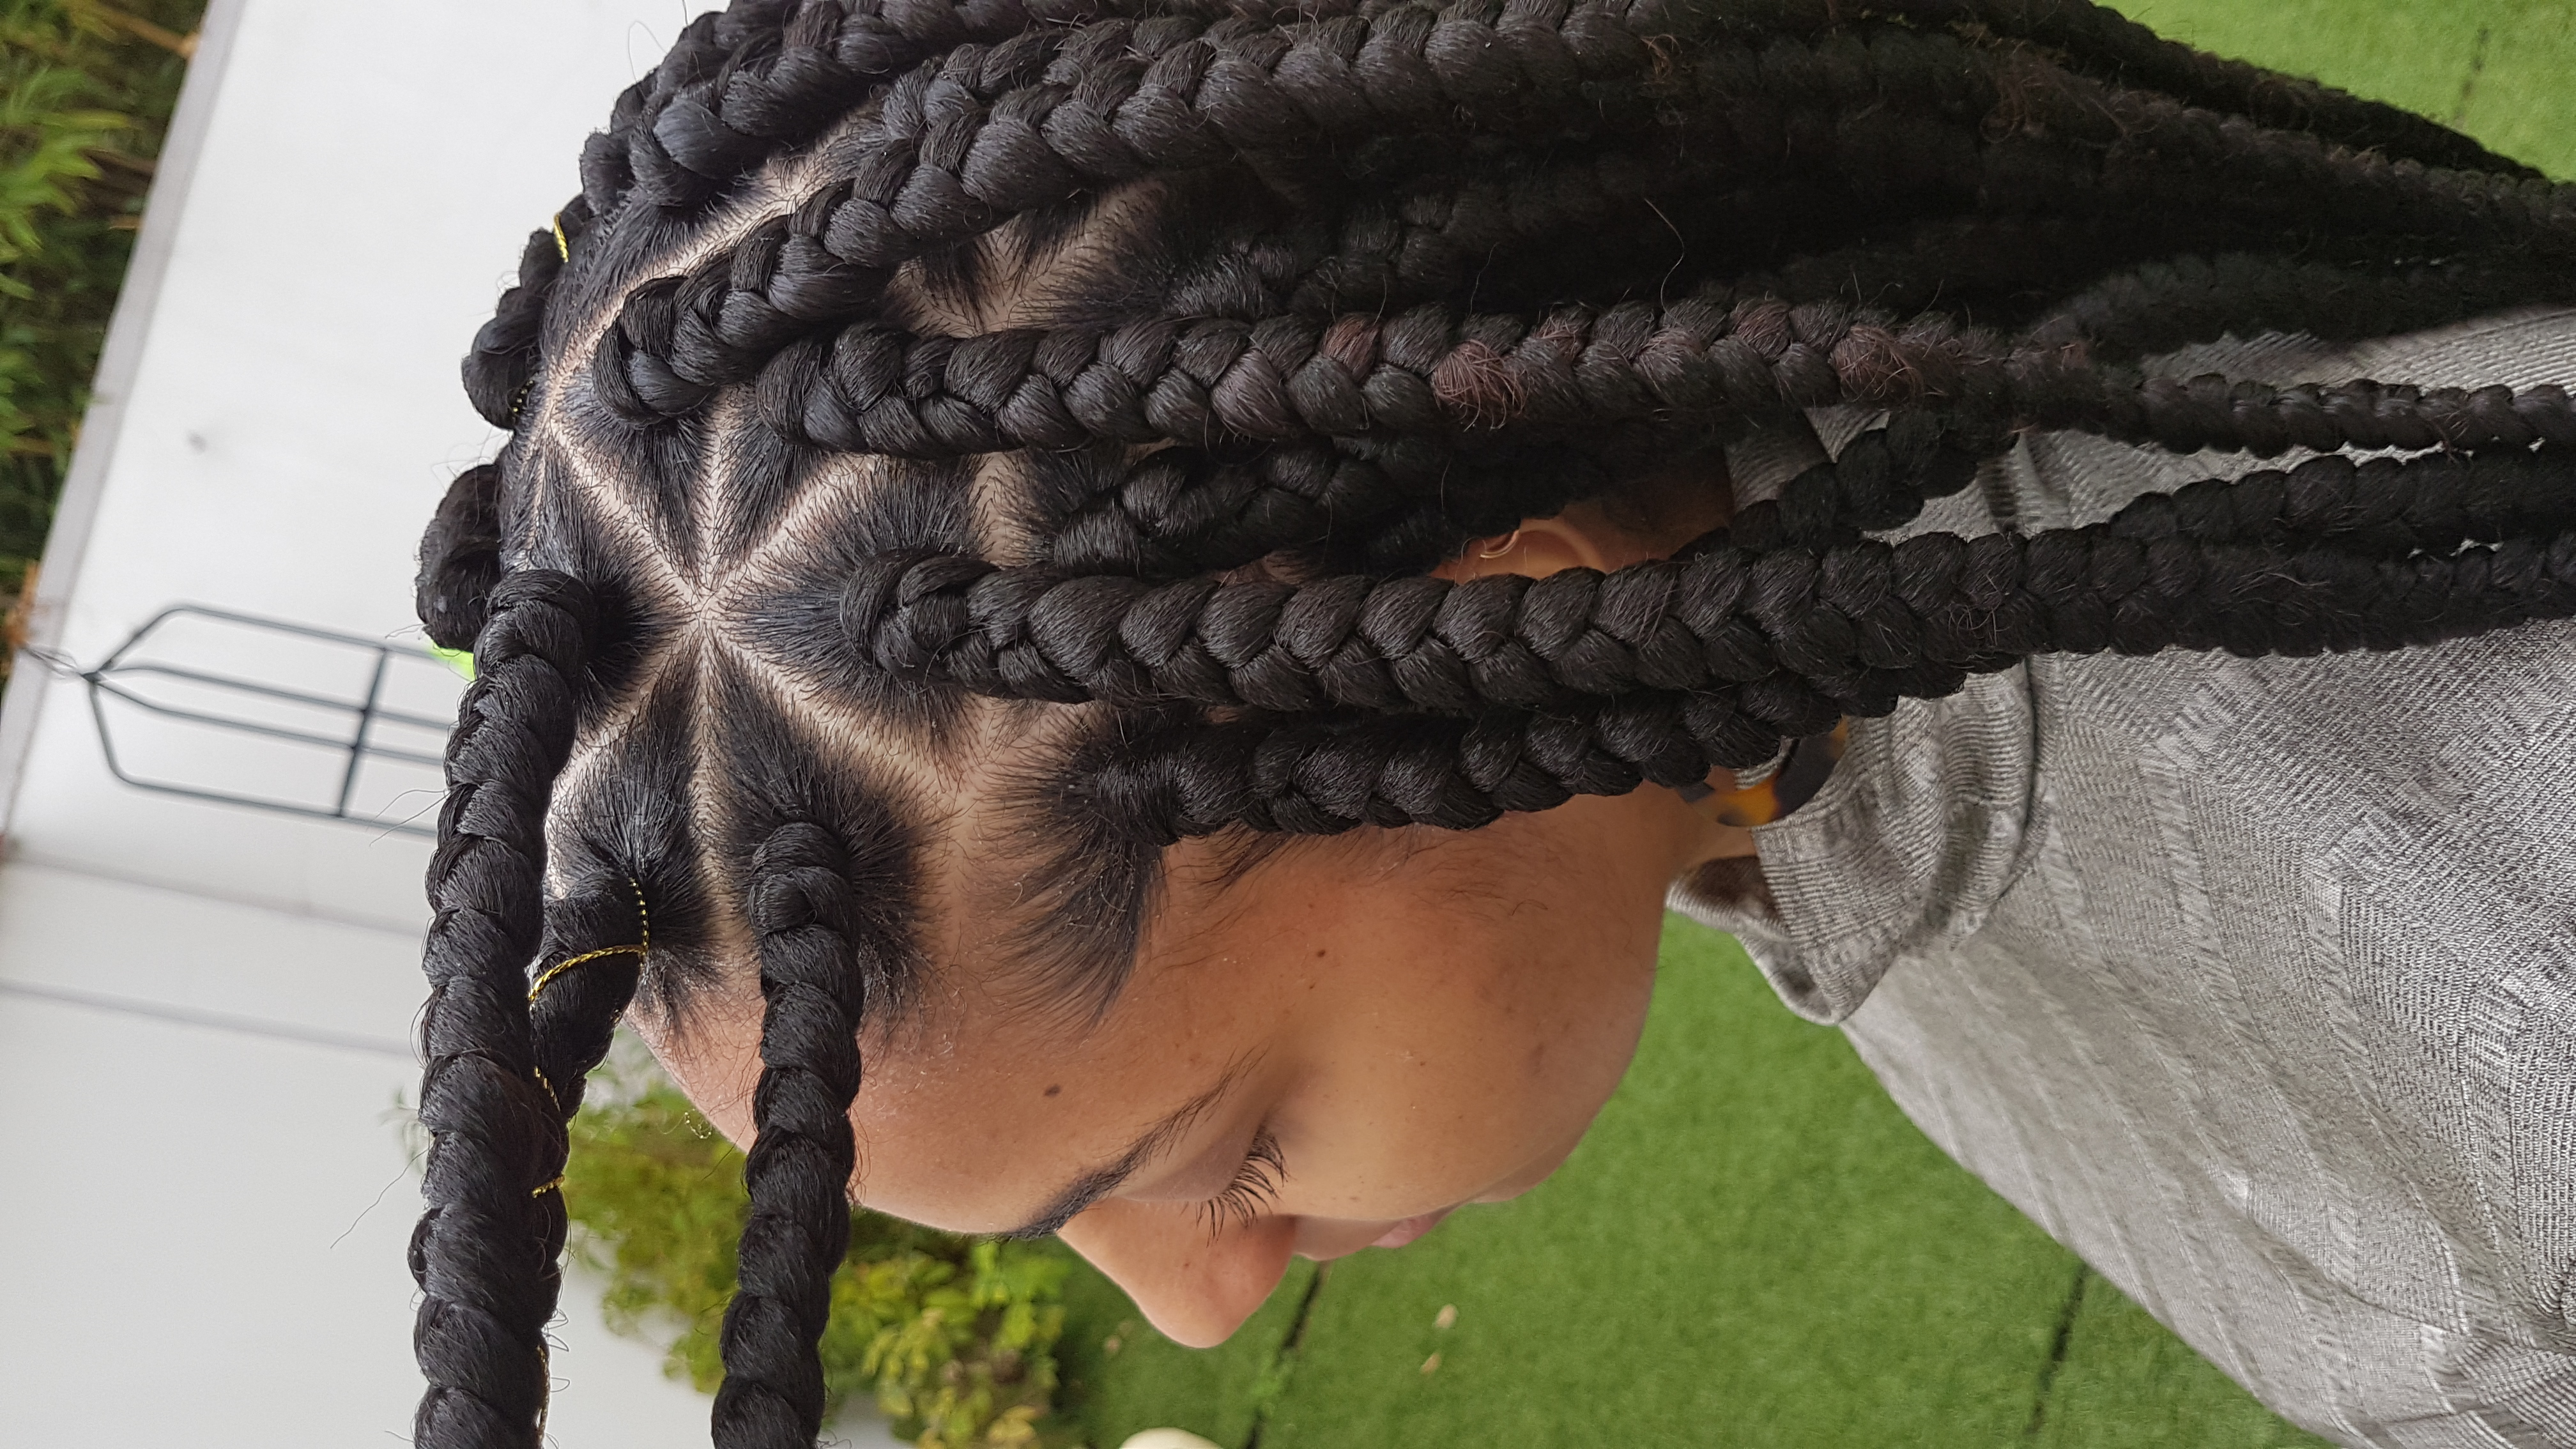 salon de coiffure afro tresse tresses box braids crochet braids vanilles tissages paris 75 77 78 91 92 93 94 95 POPUQFJD